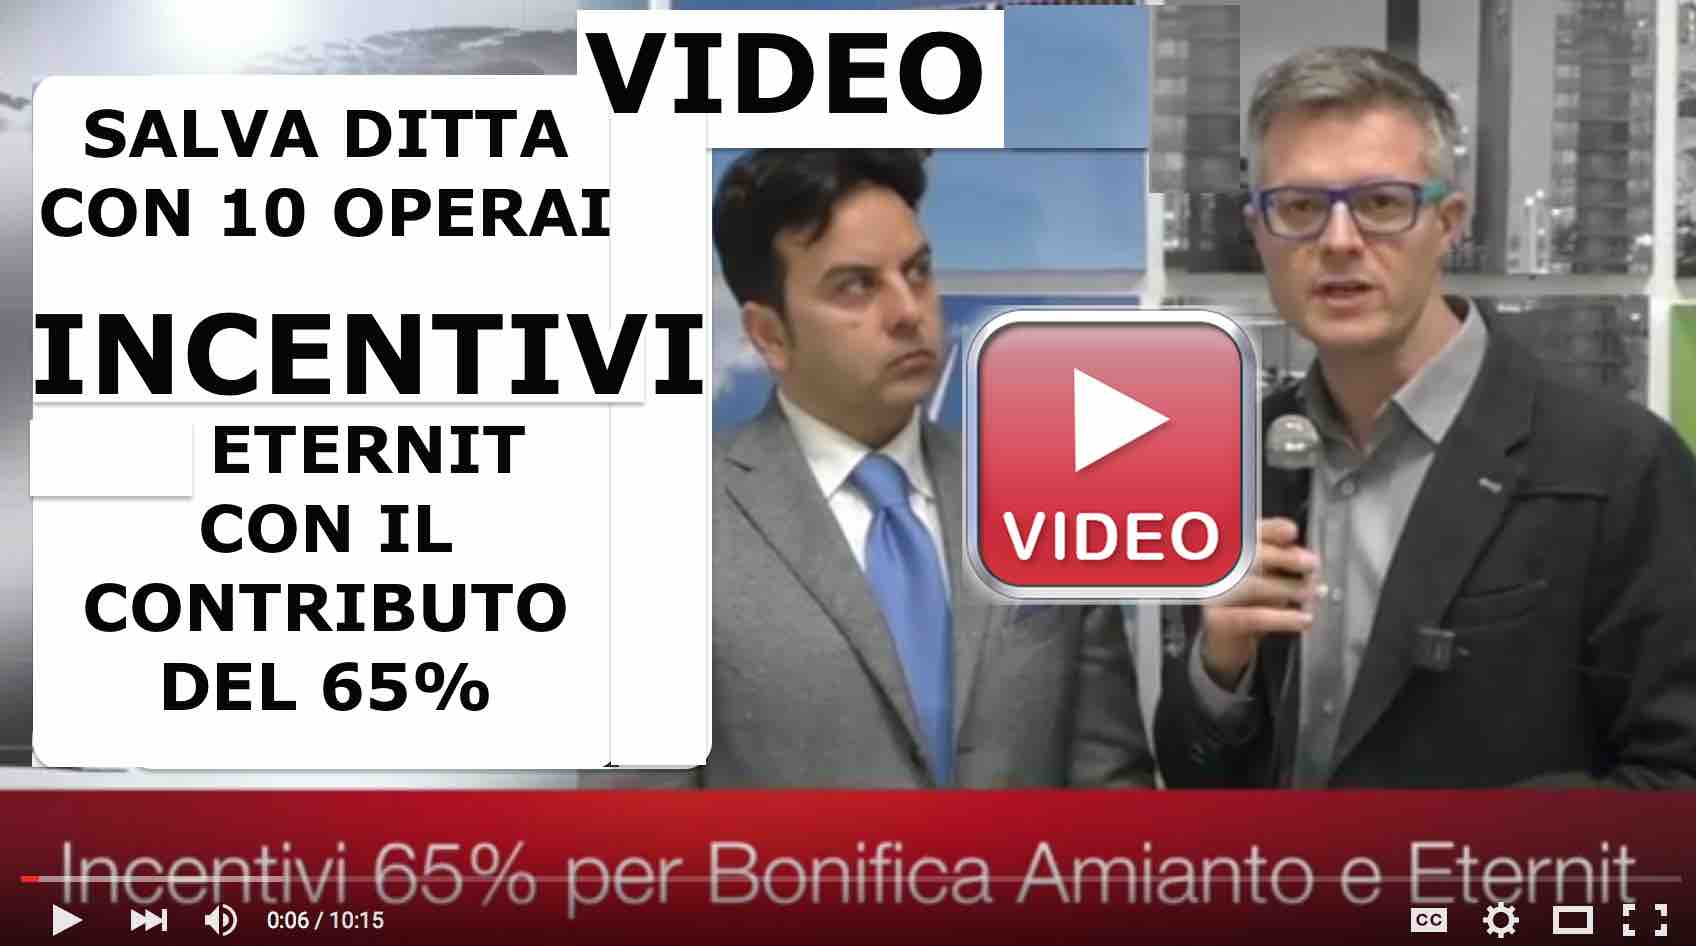 Video bonifica amianto rimozione eternit